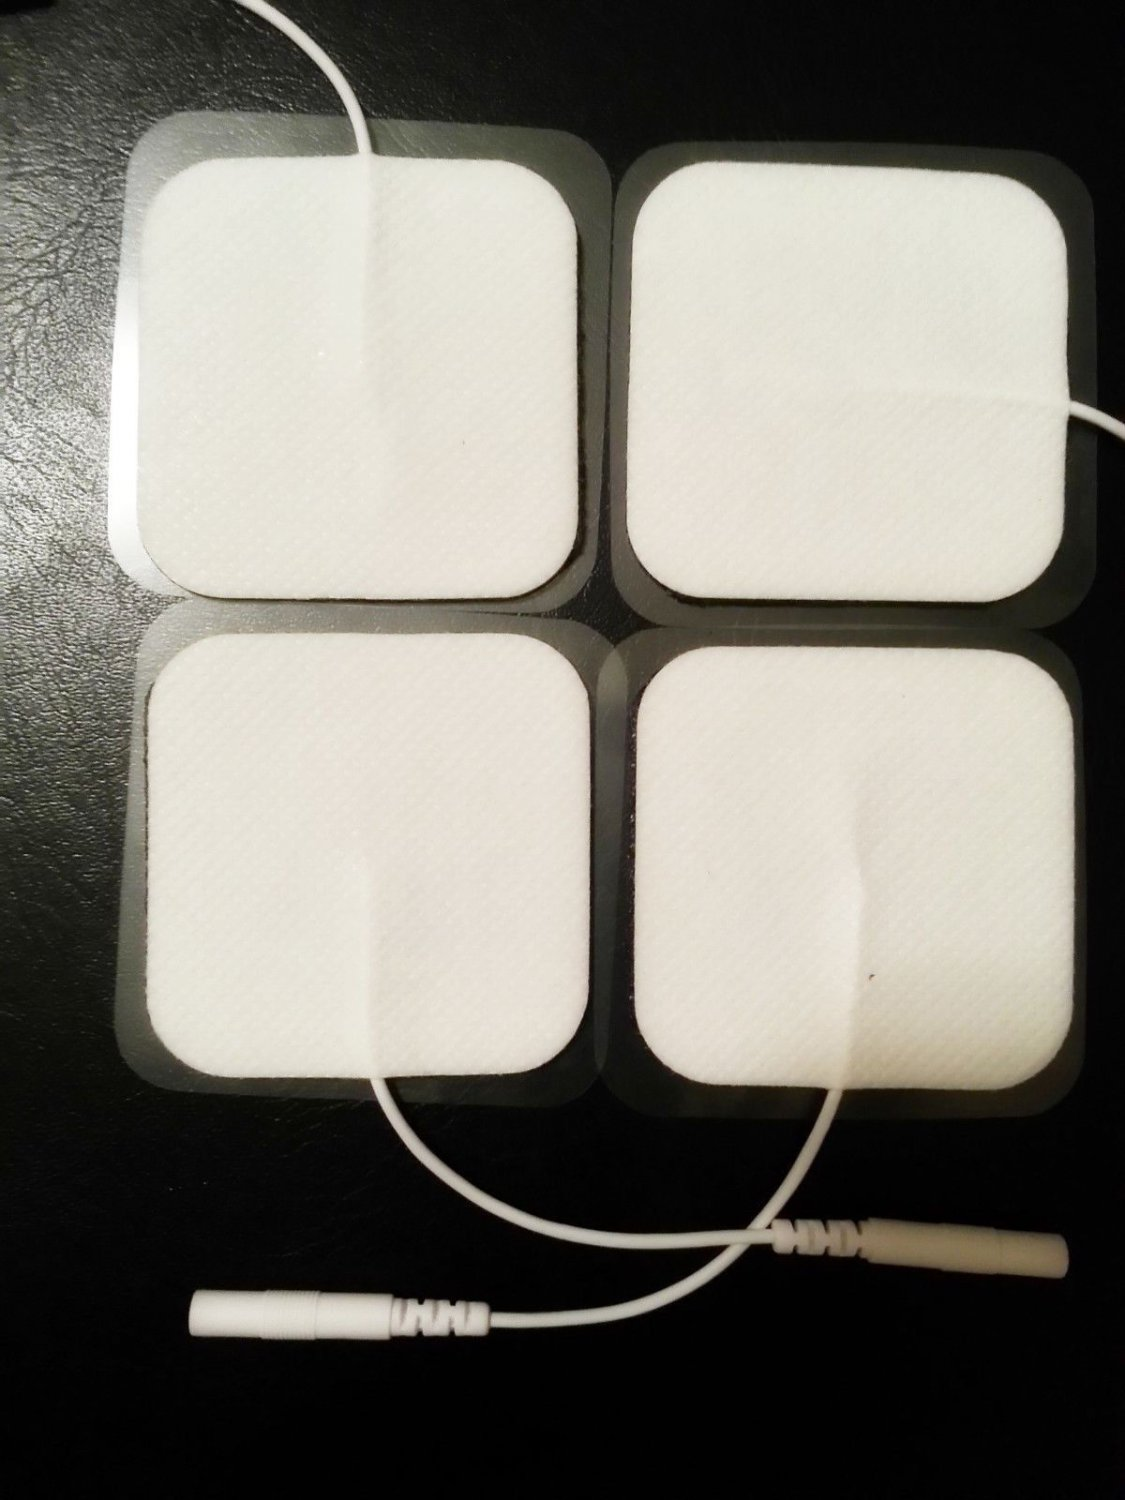 8 PC SQUARE REPLACEMENT ELECTRODES PADS FOR DIGITAL MUSCLE STIMULATOR MASSAGER